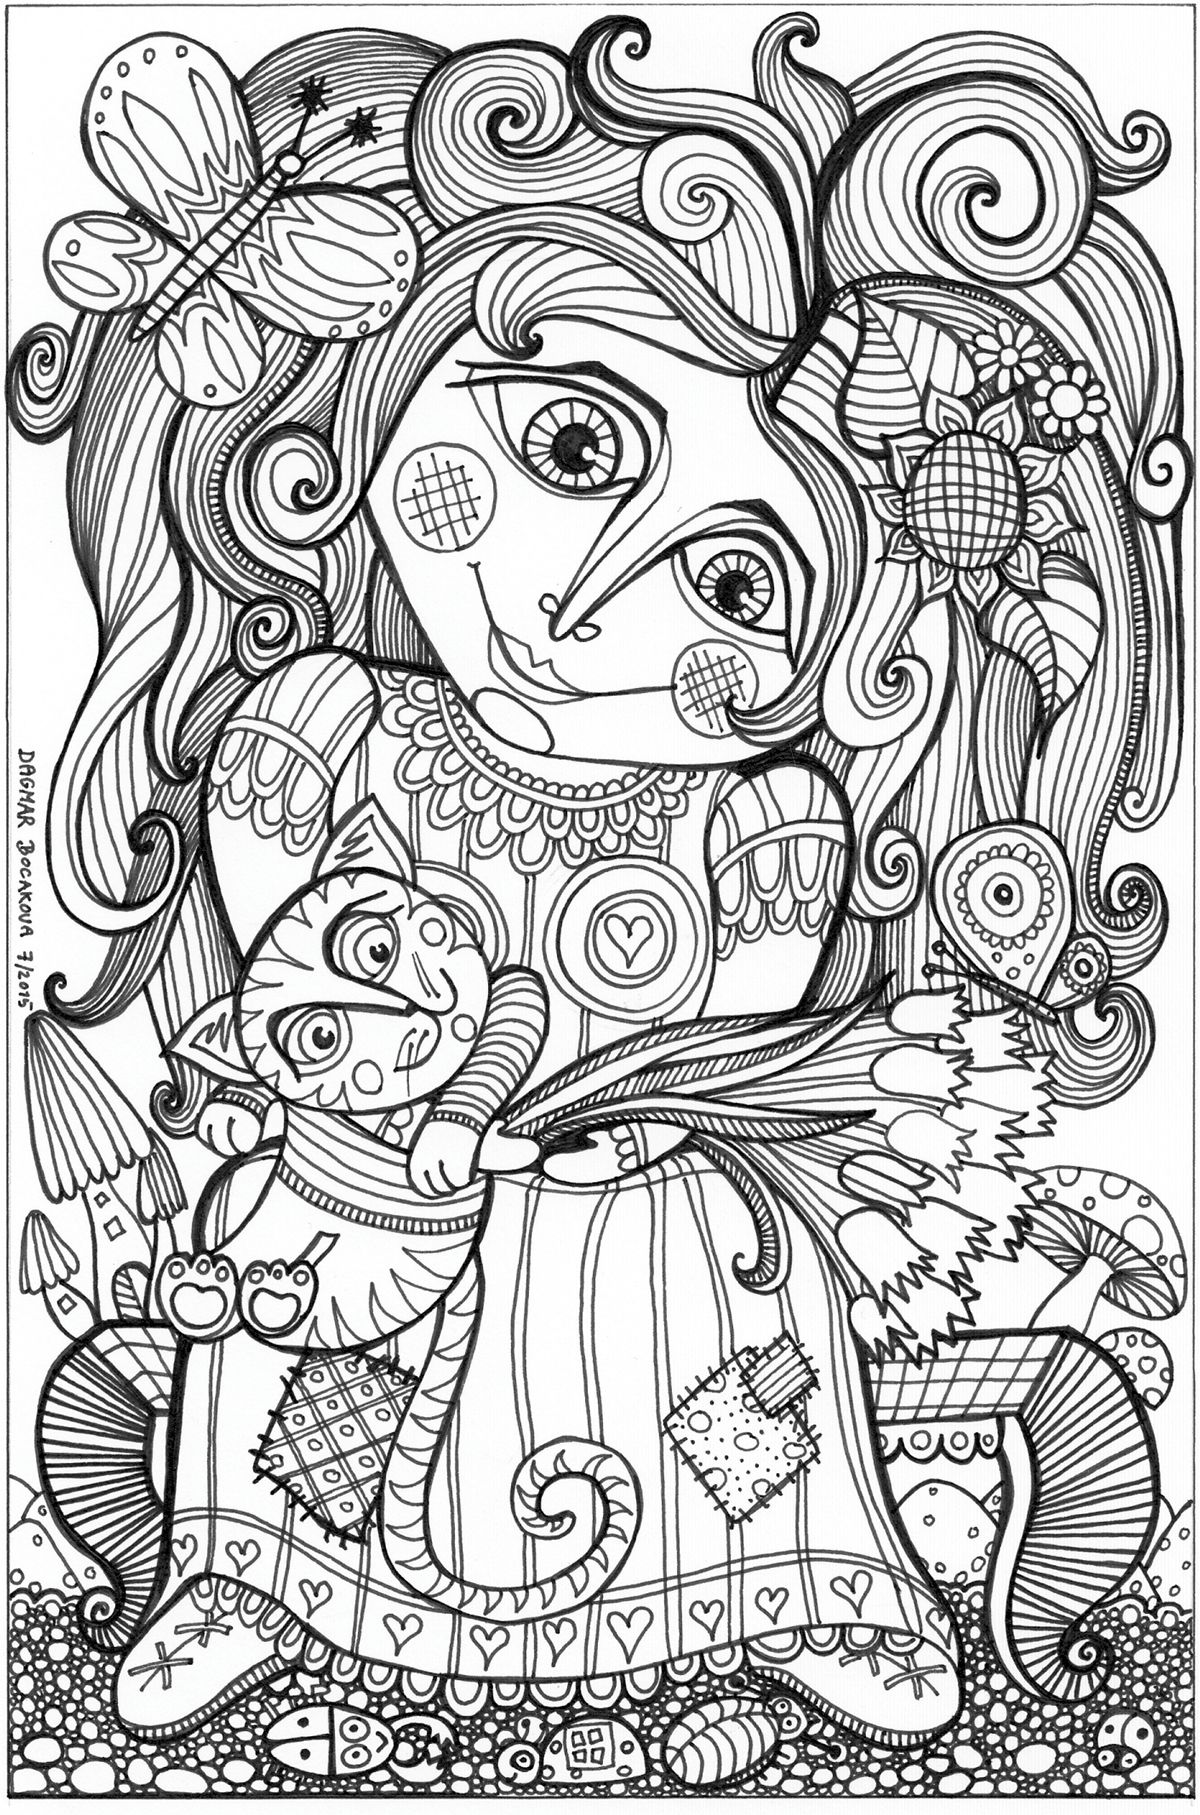 The Nature of Colors coloring book for adults | Mandalas | Pinterest ...